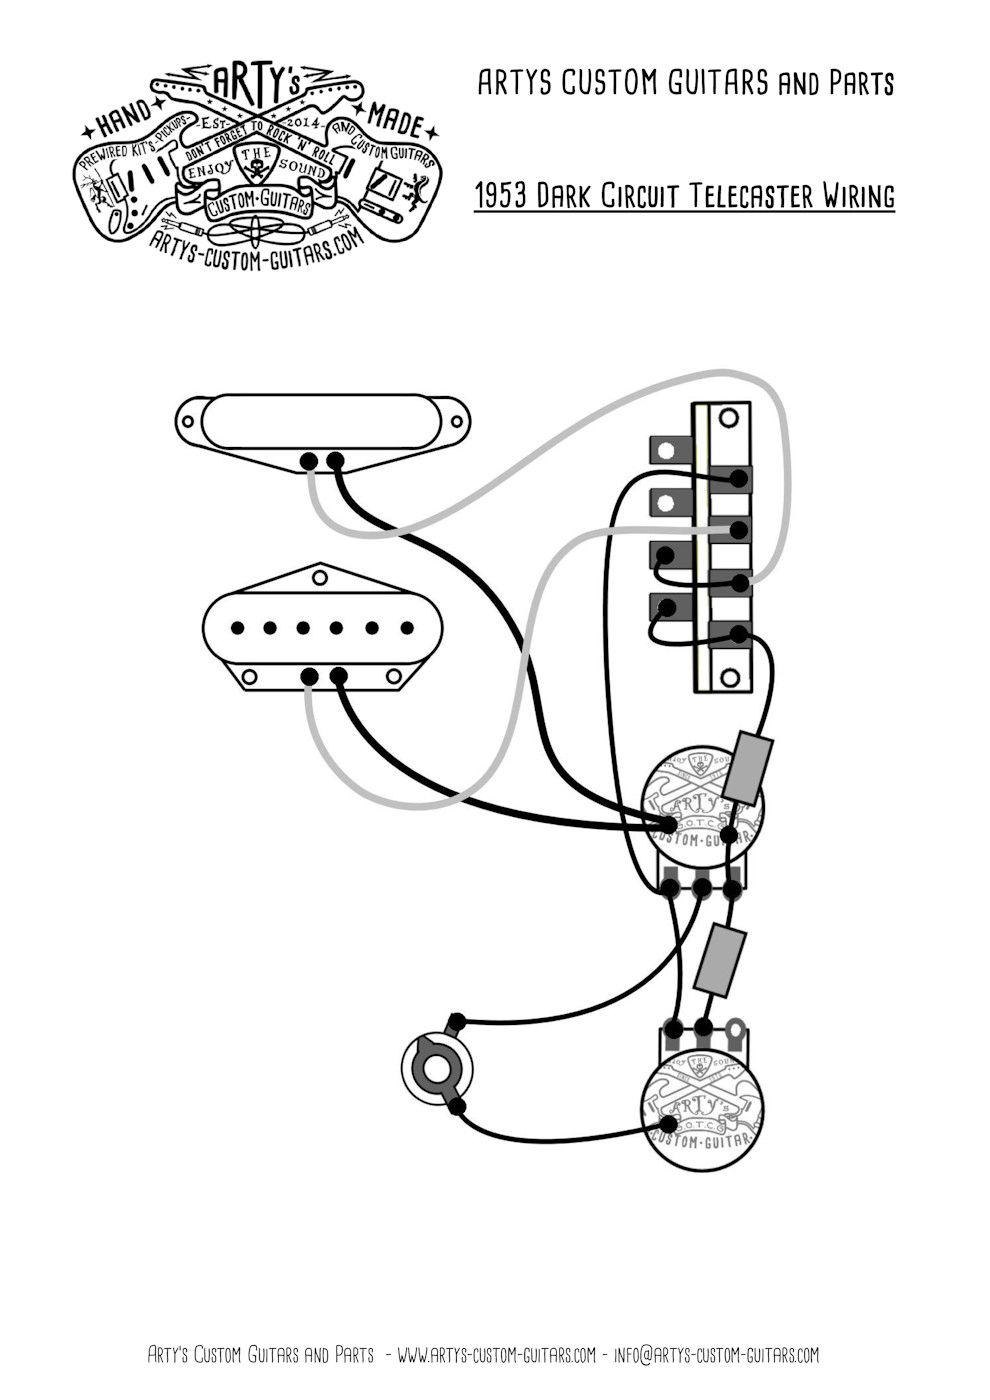 arty's custom guitars wiring diagram plan telecaster assembly telecaster wiring 3-way switch sss arty's custom guitars wiring diagram plan telecaster assembly harness tele